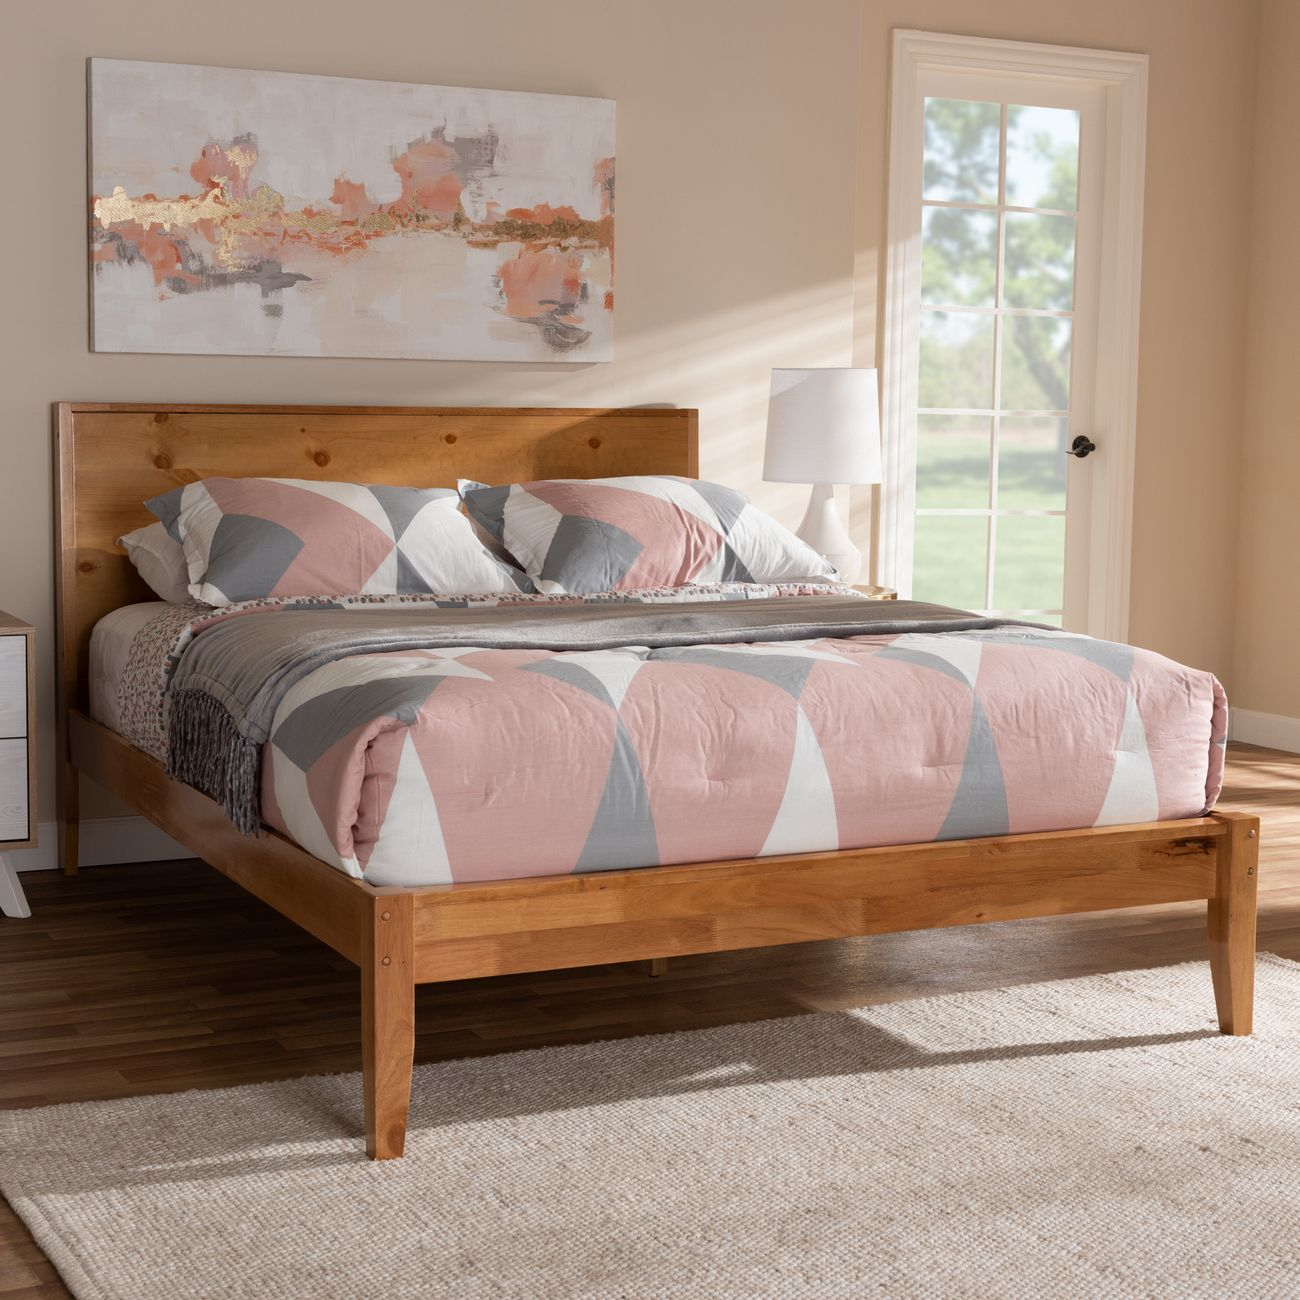 Baxton Studio Marana Modern Rustic Natural Oak Pine Finished Wood Full Size Platform Bed Sw8093 Natural Full